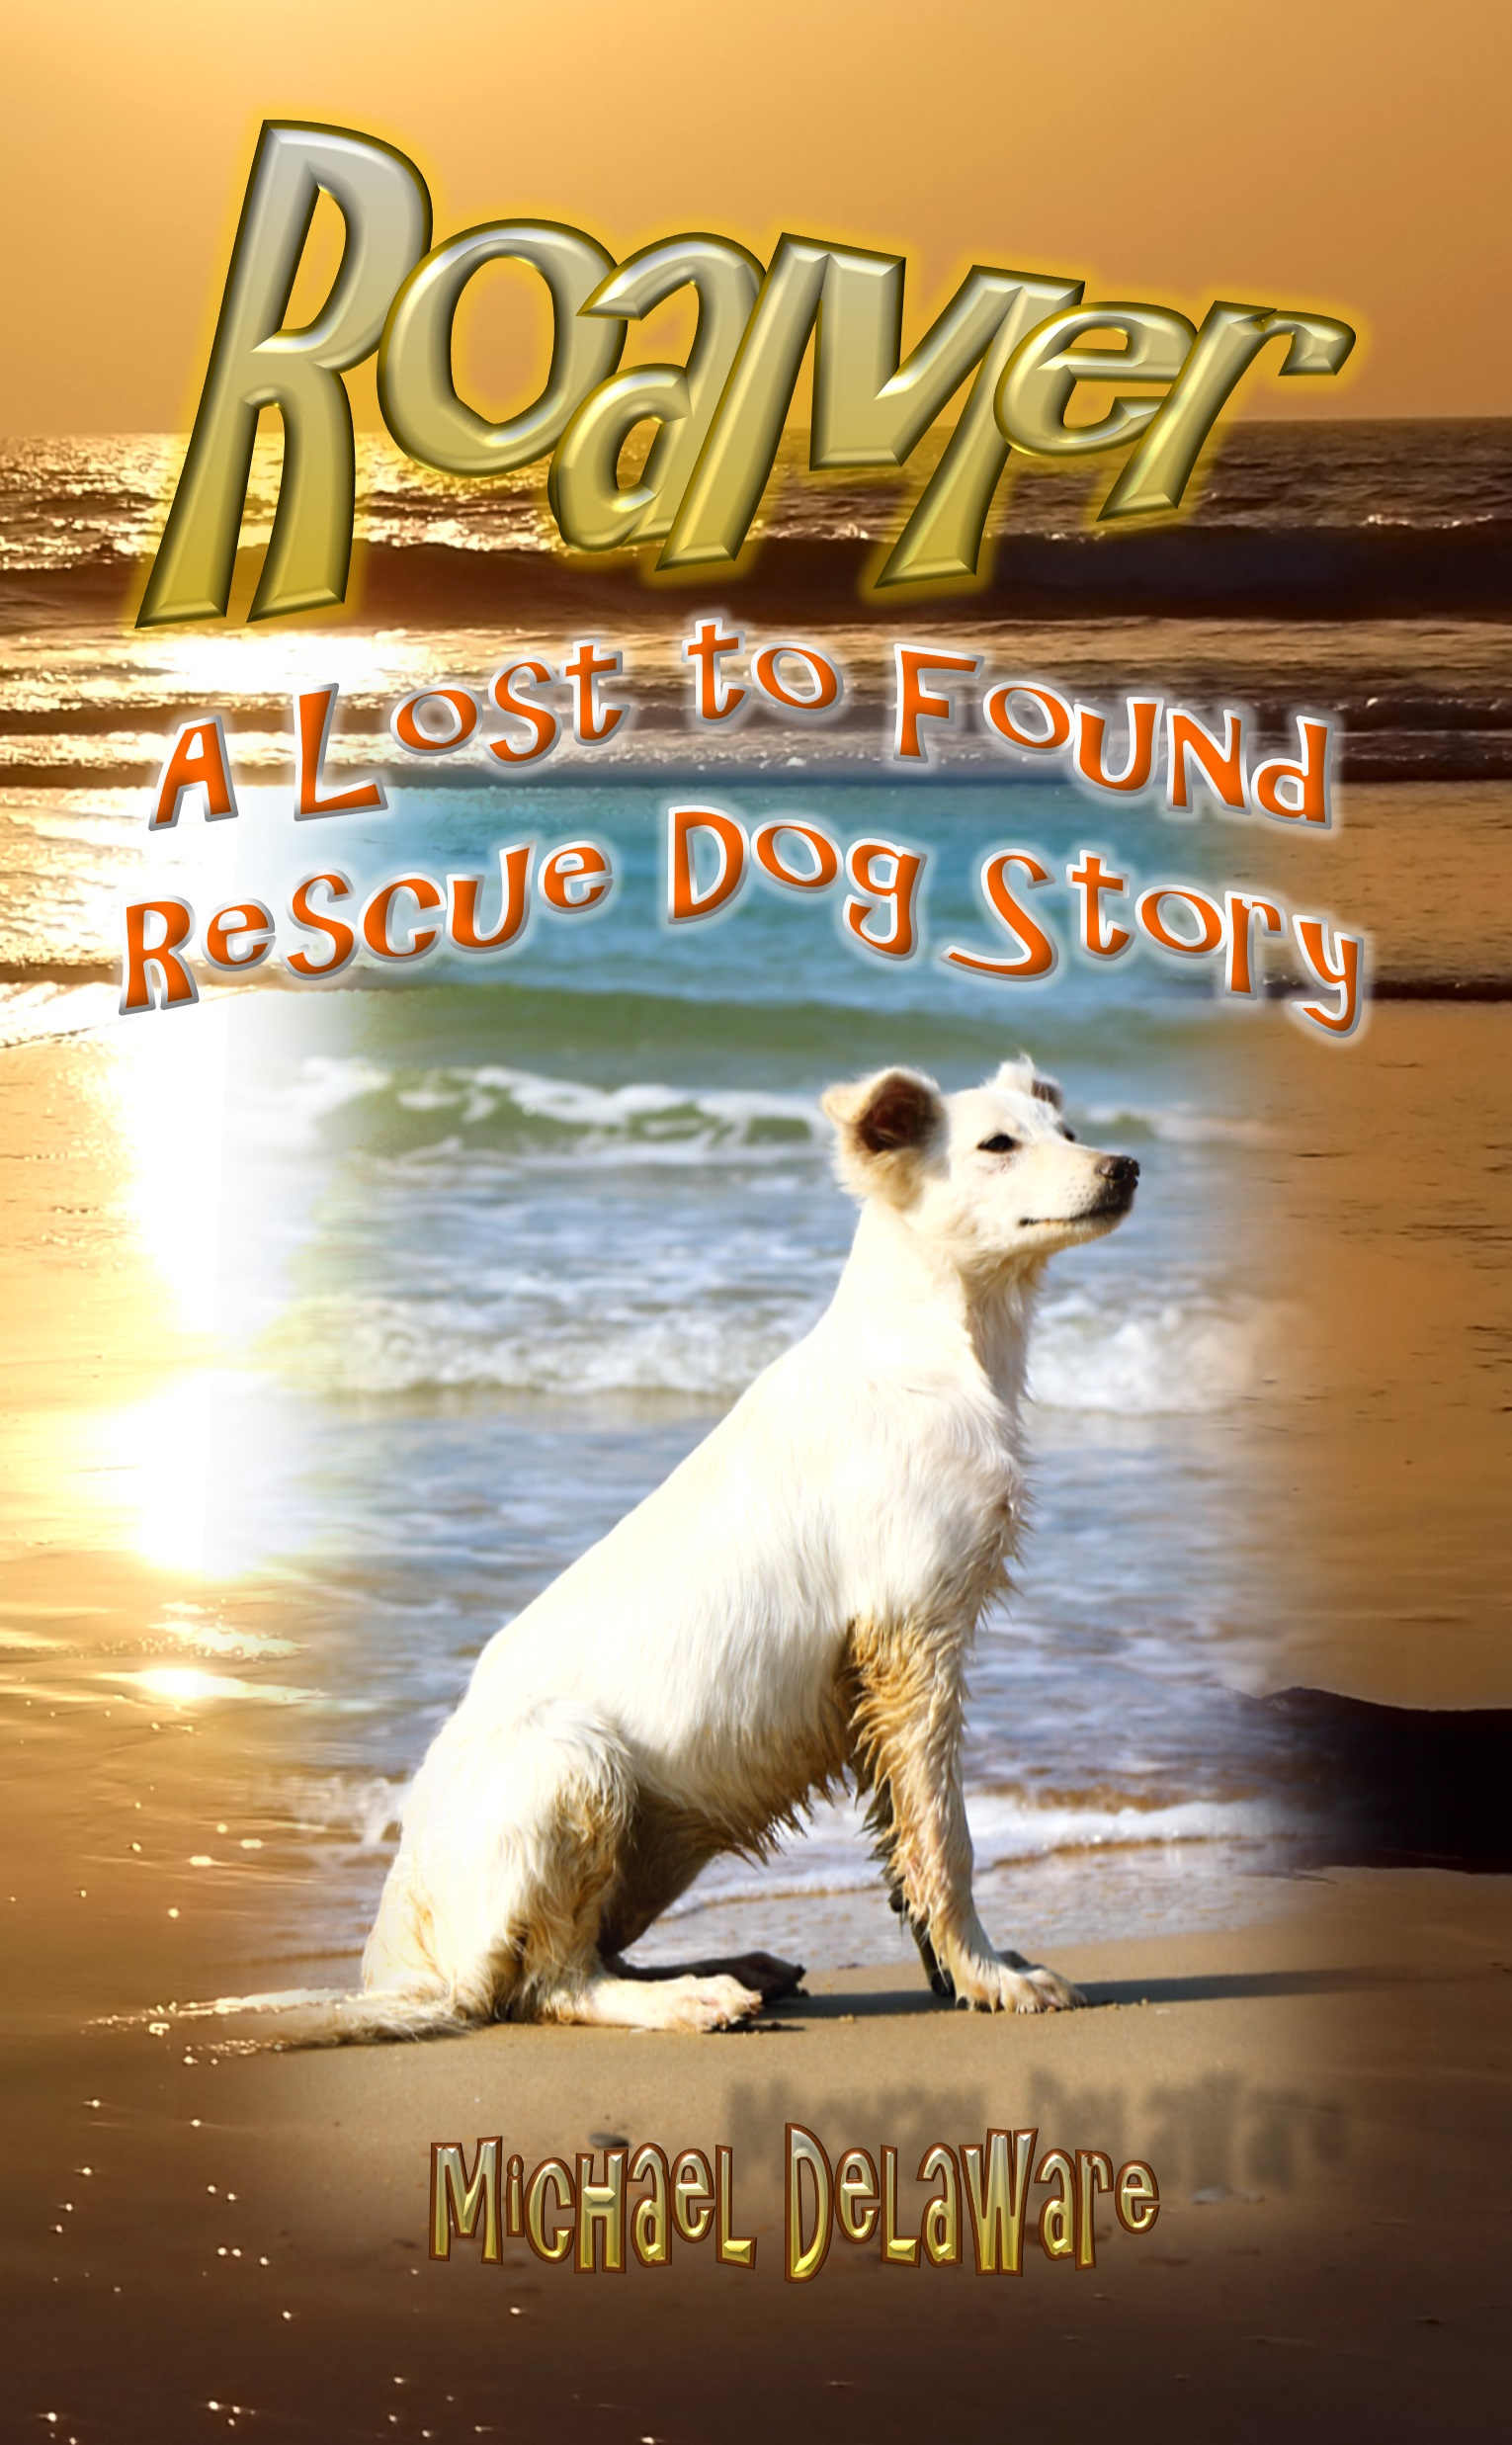 Roamer: A Lost to Found Rescue Dog Story by Michael Delaware